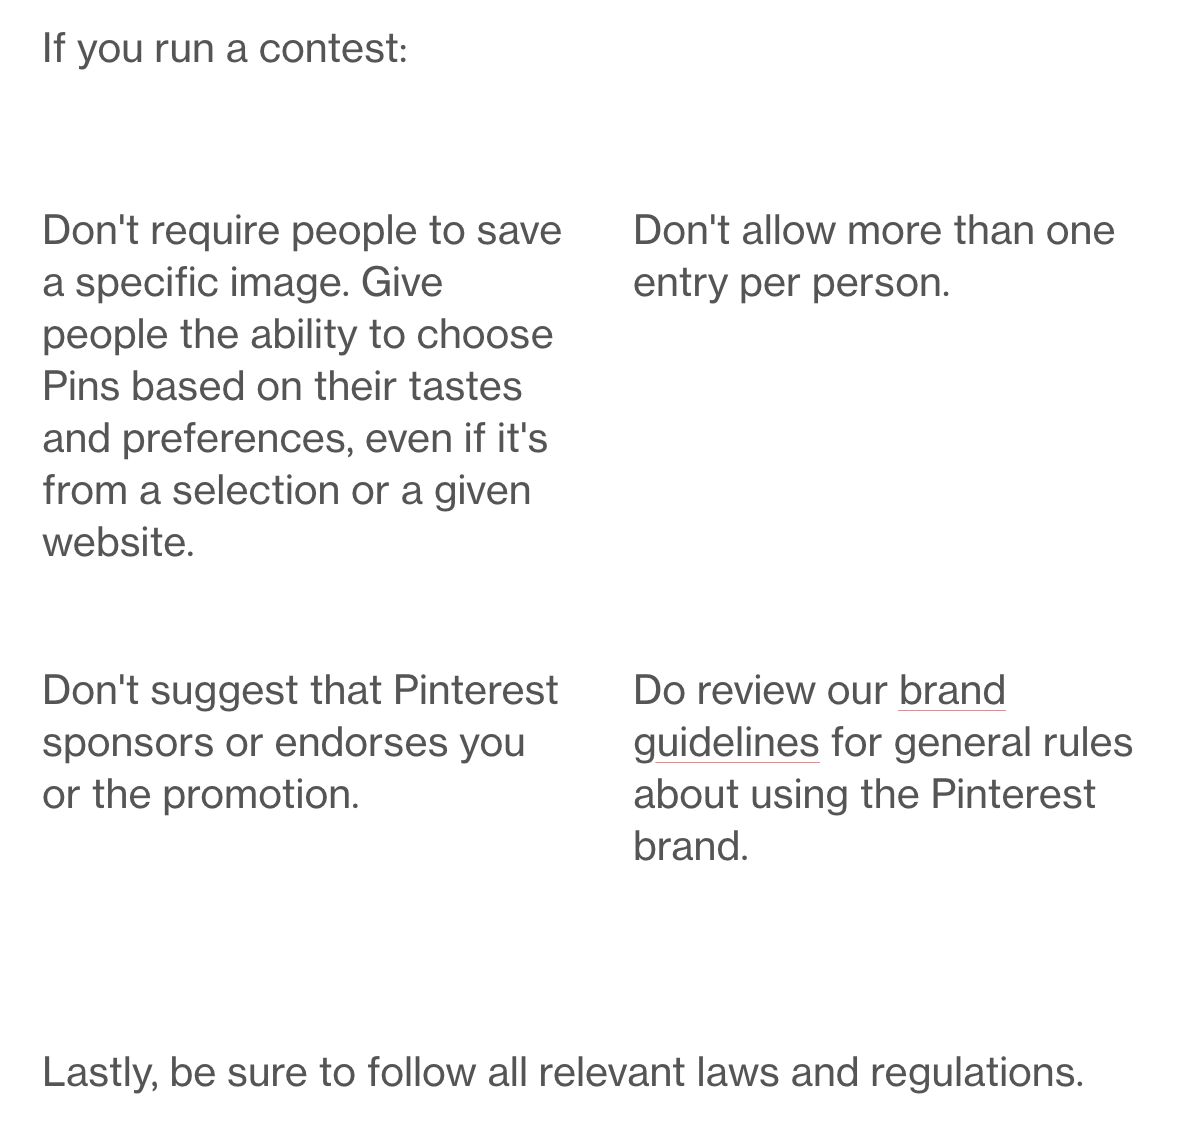 Screenshot of Pinterest's competition or contest rules updated September 2018